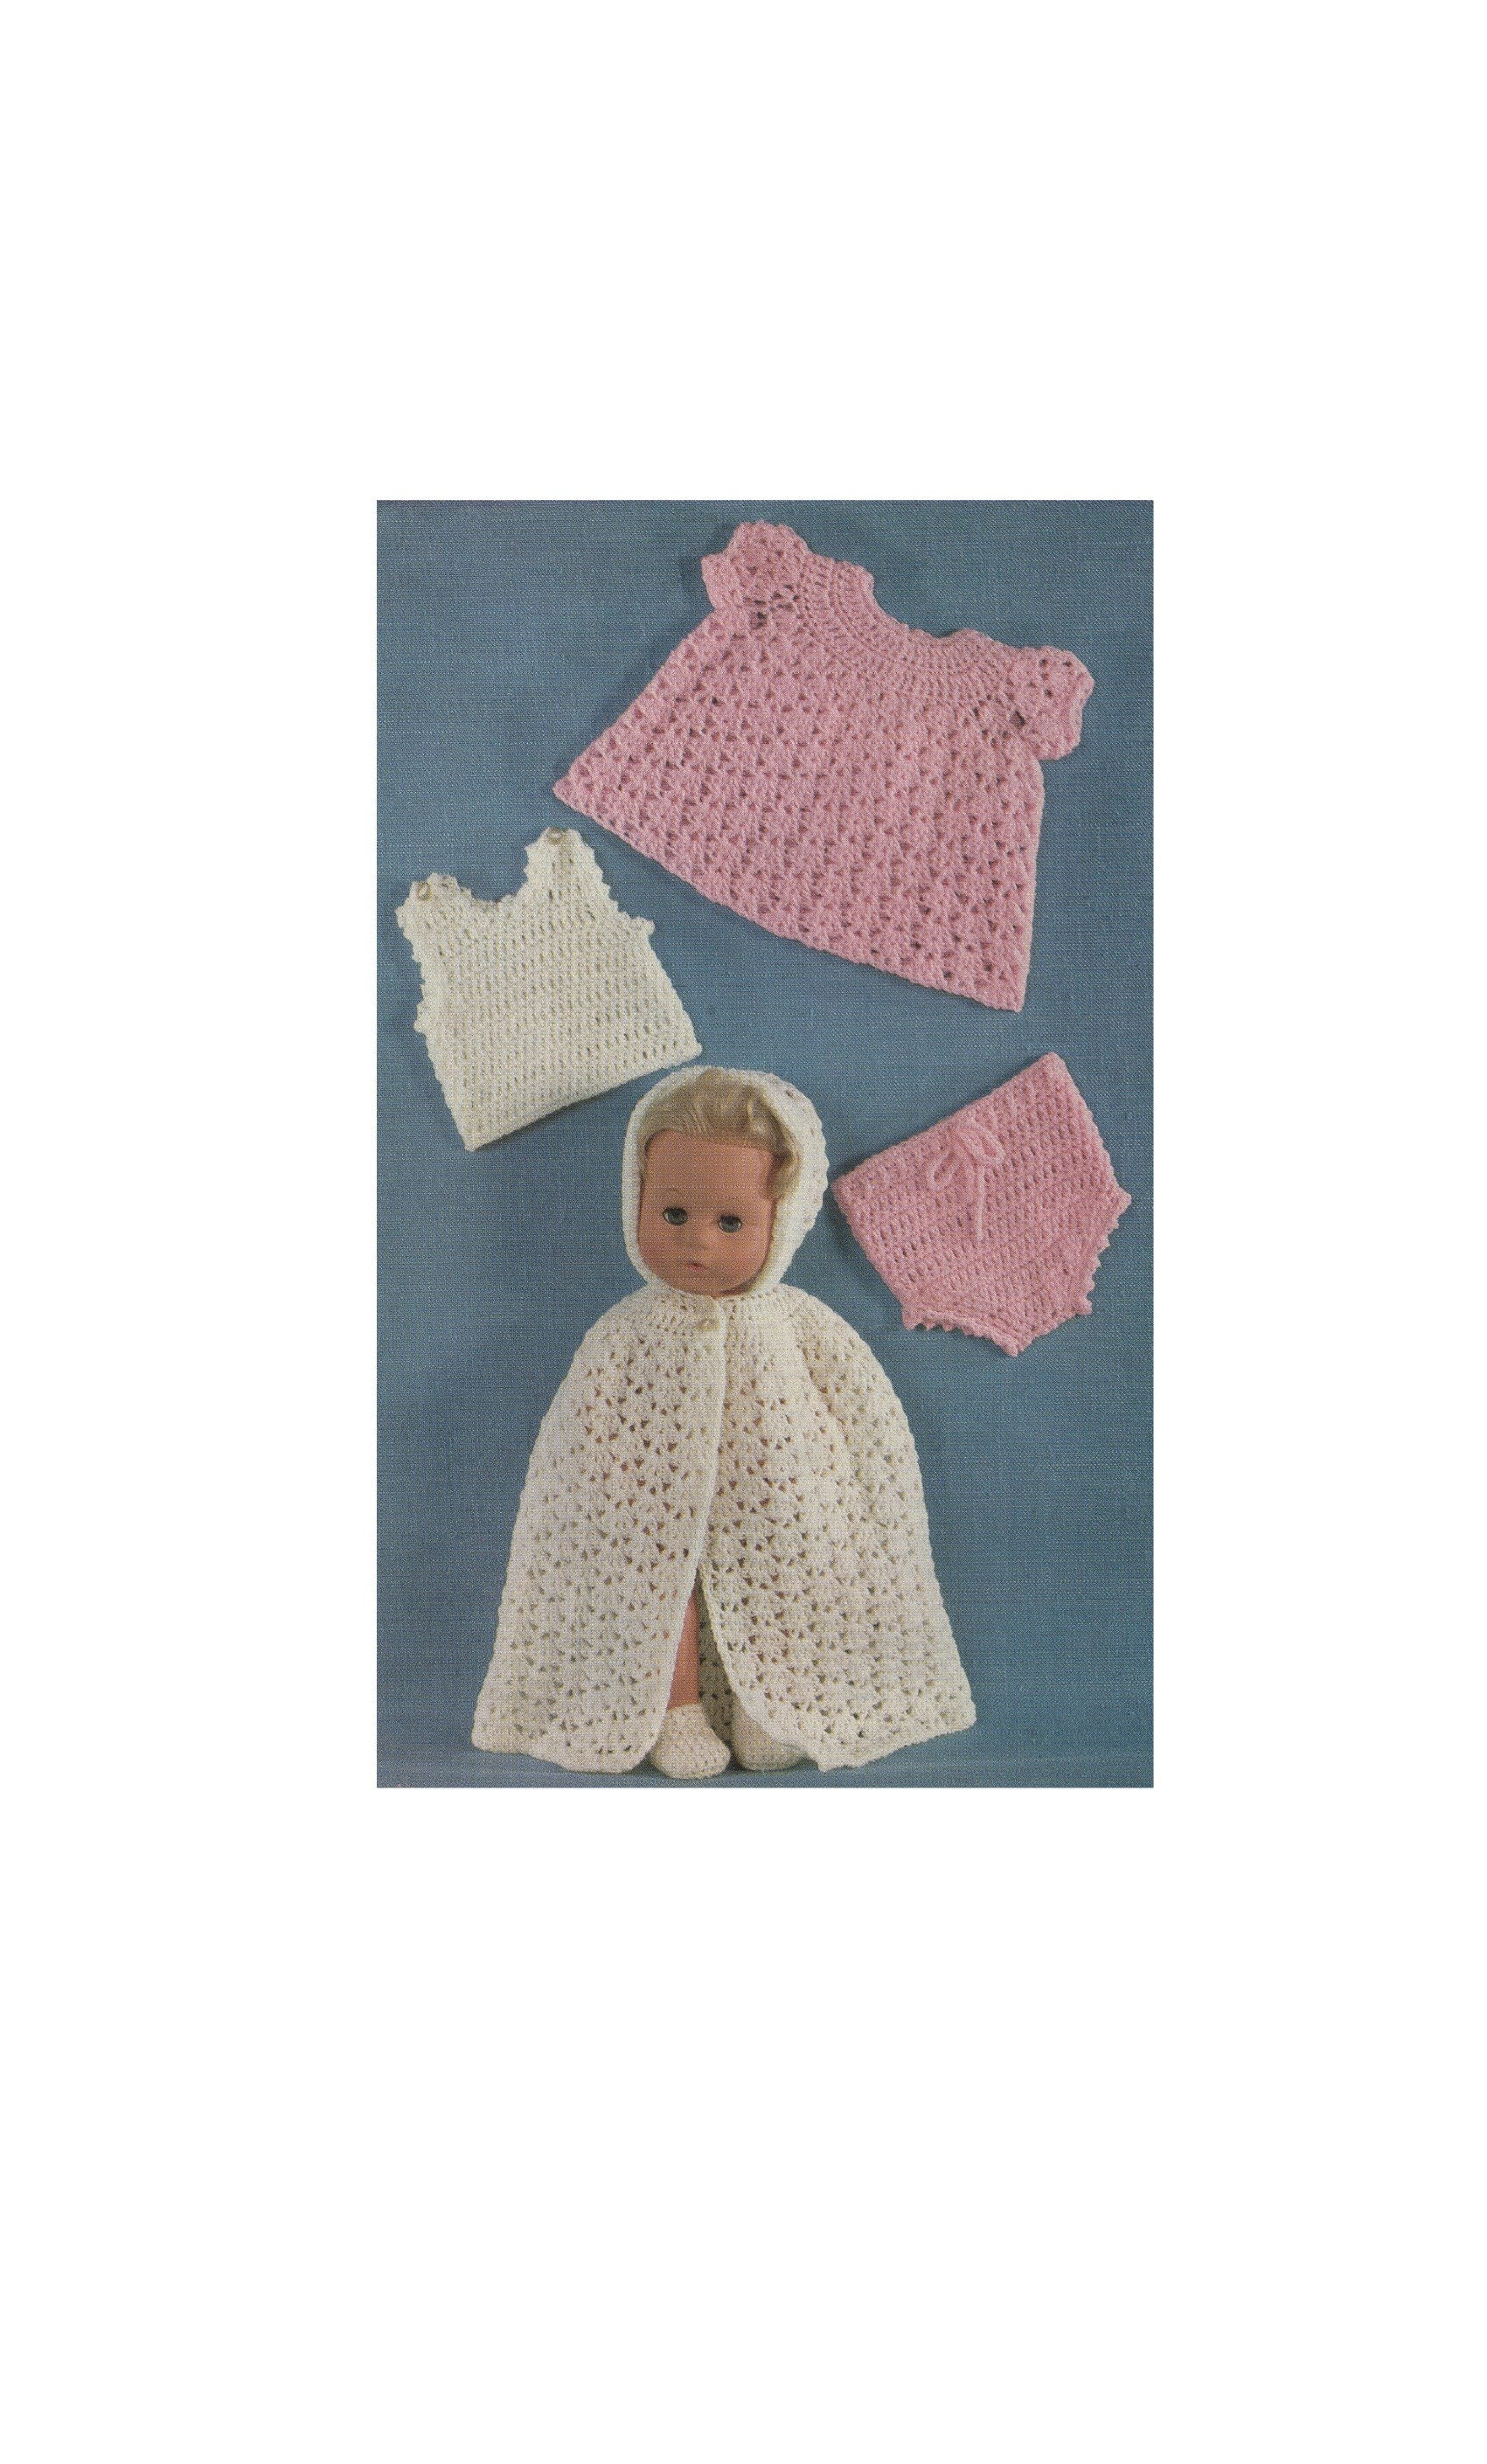 Dolls Clothes Crochet Pattern Pdf For 14 Inch Baby Doll Tiny Tears